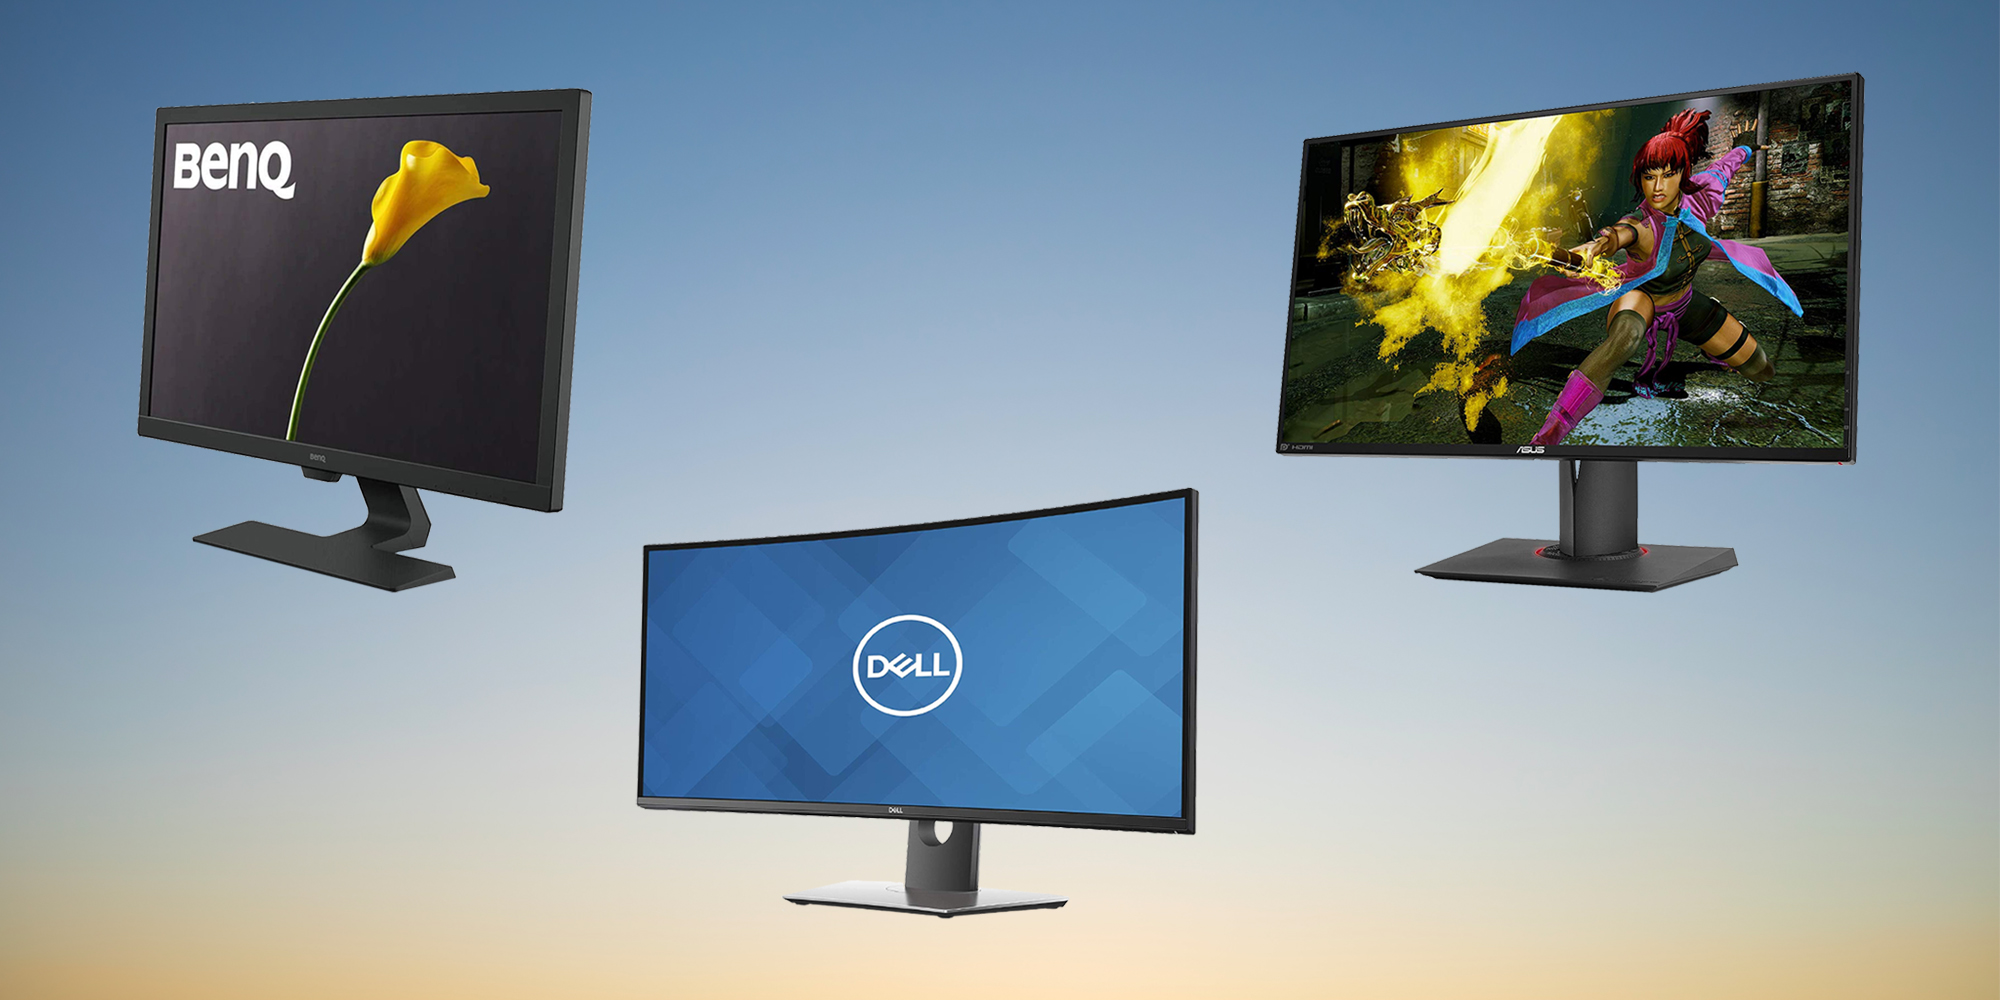 Best computer monitors and screens for your laptop or desktop PC